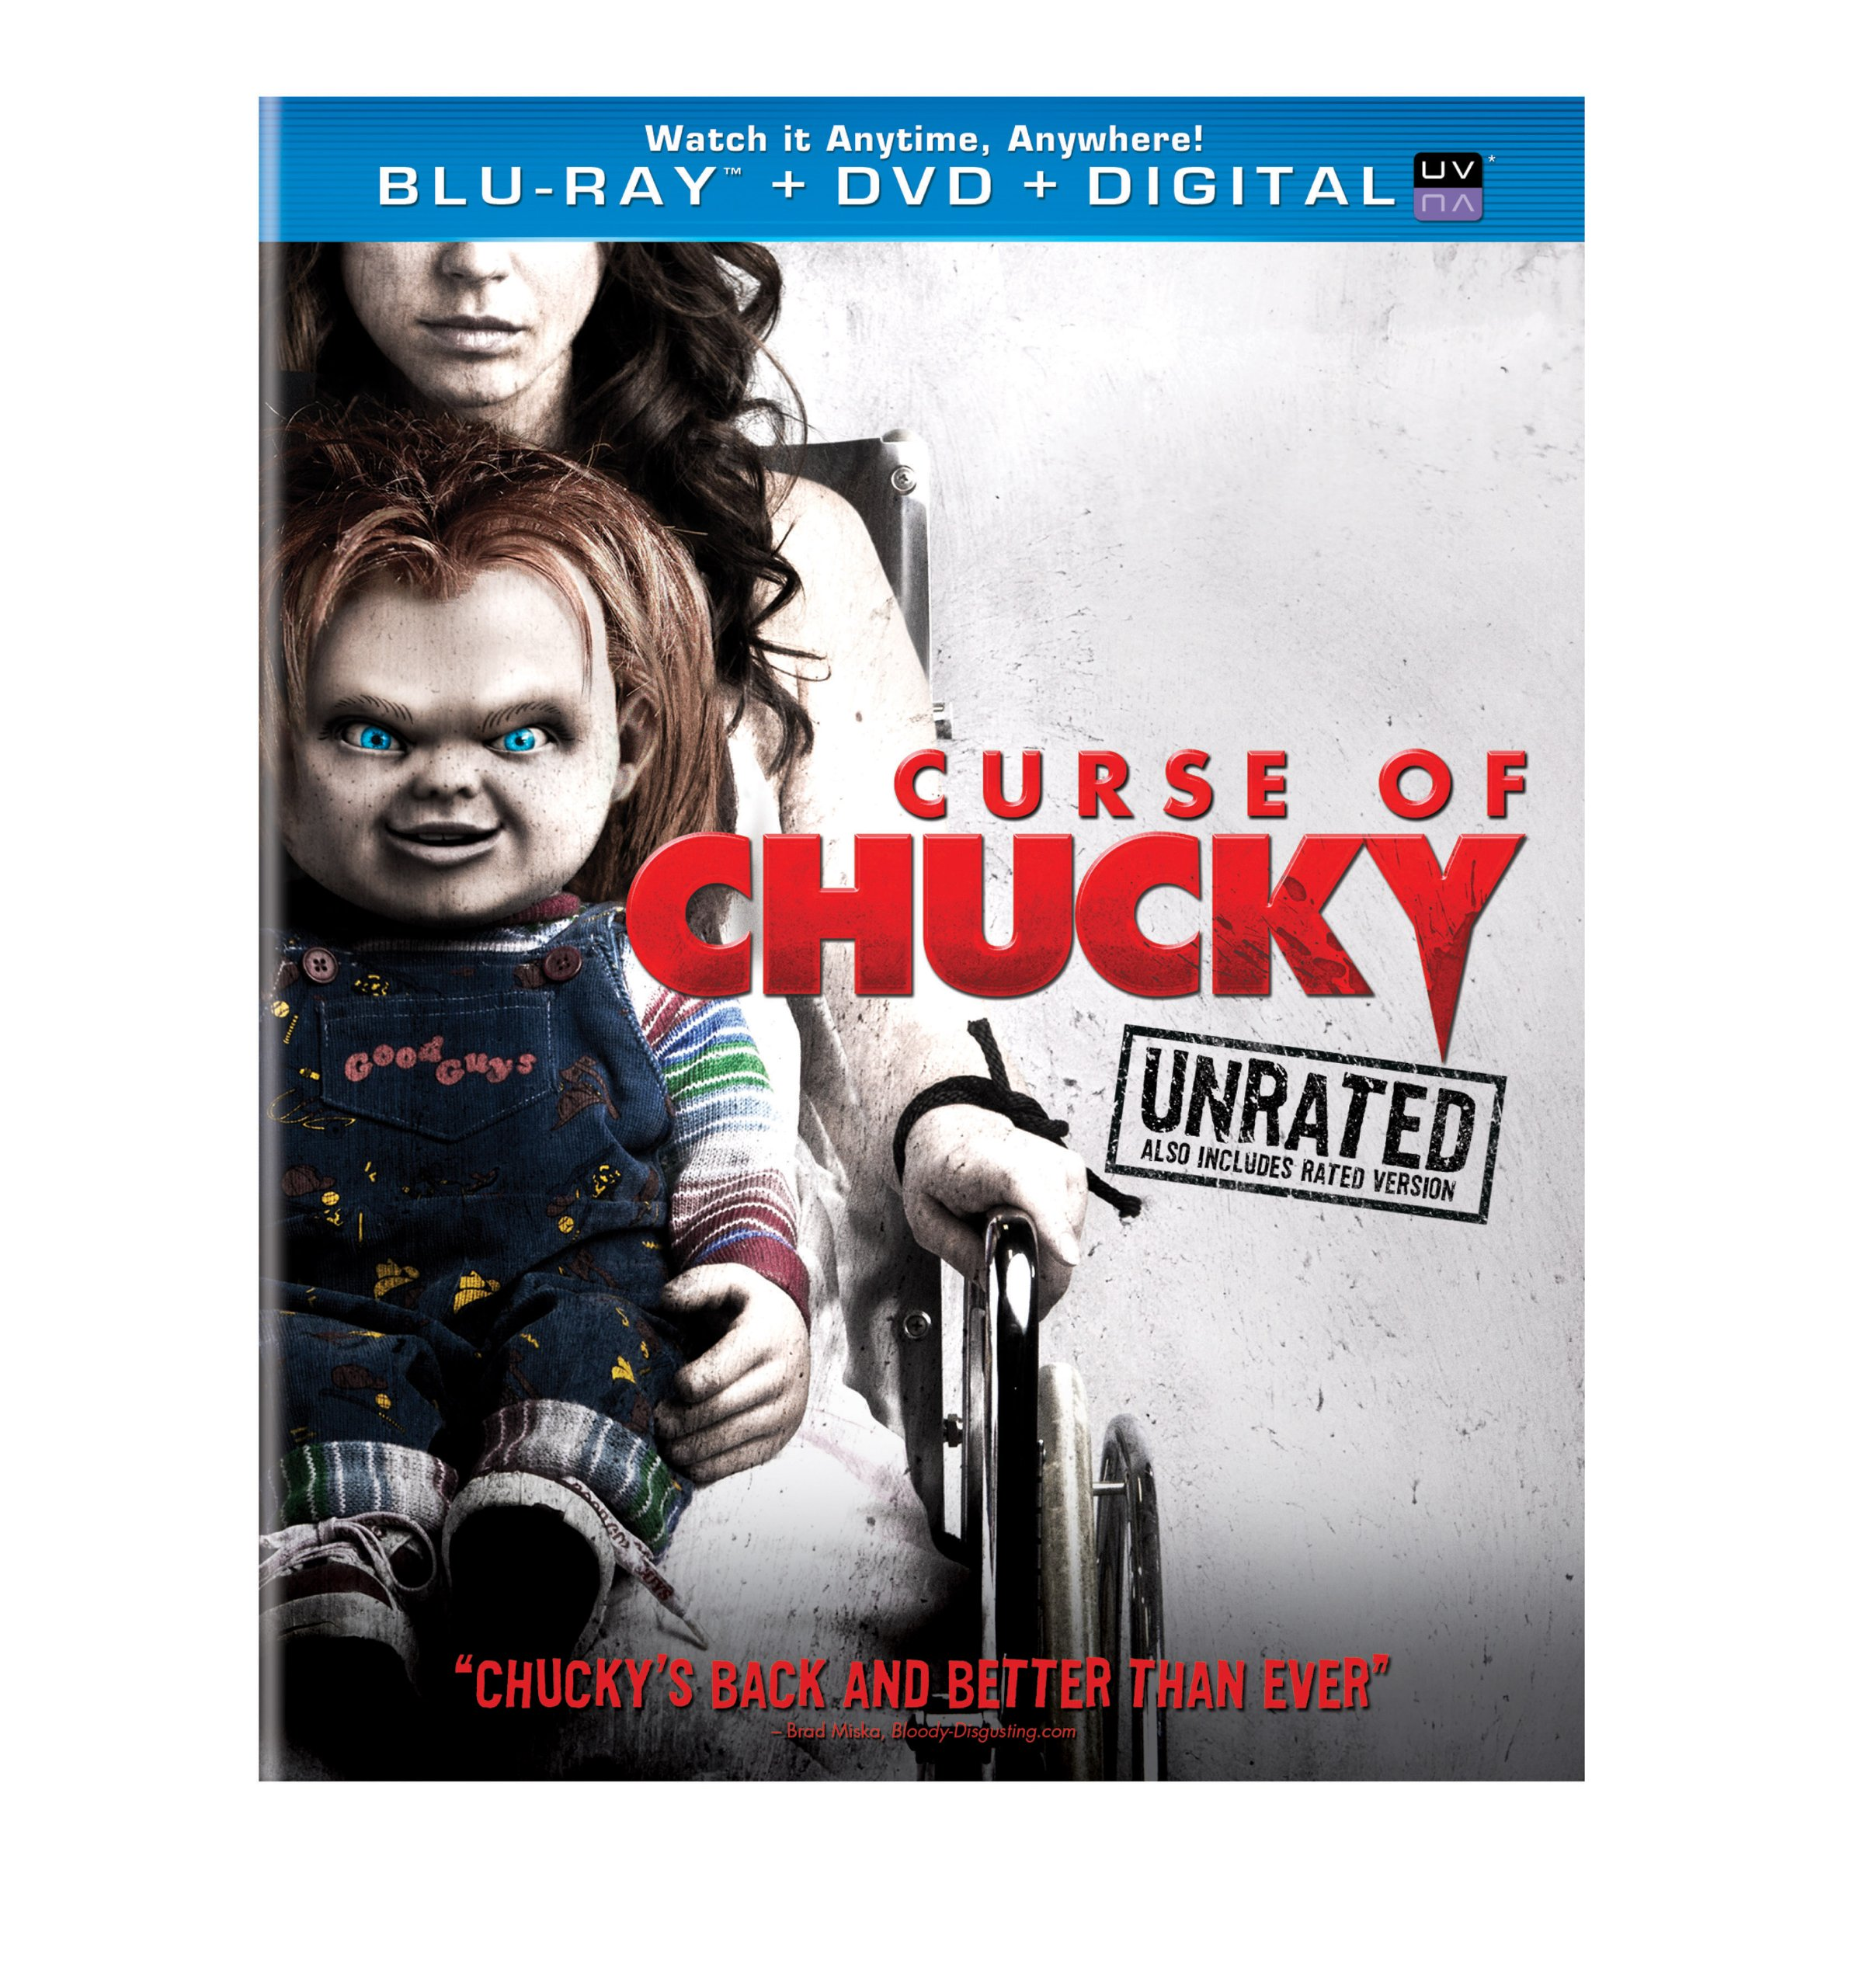 Blu-ray : Curse of Chucky (With DVD, Ultraviolet Digital Copy, Digital Copy, Snap Case, Slipsleeve Packaging)